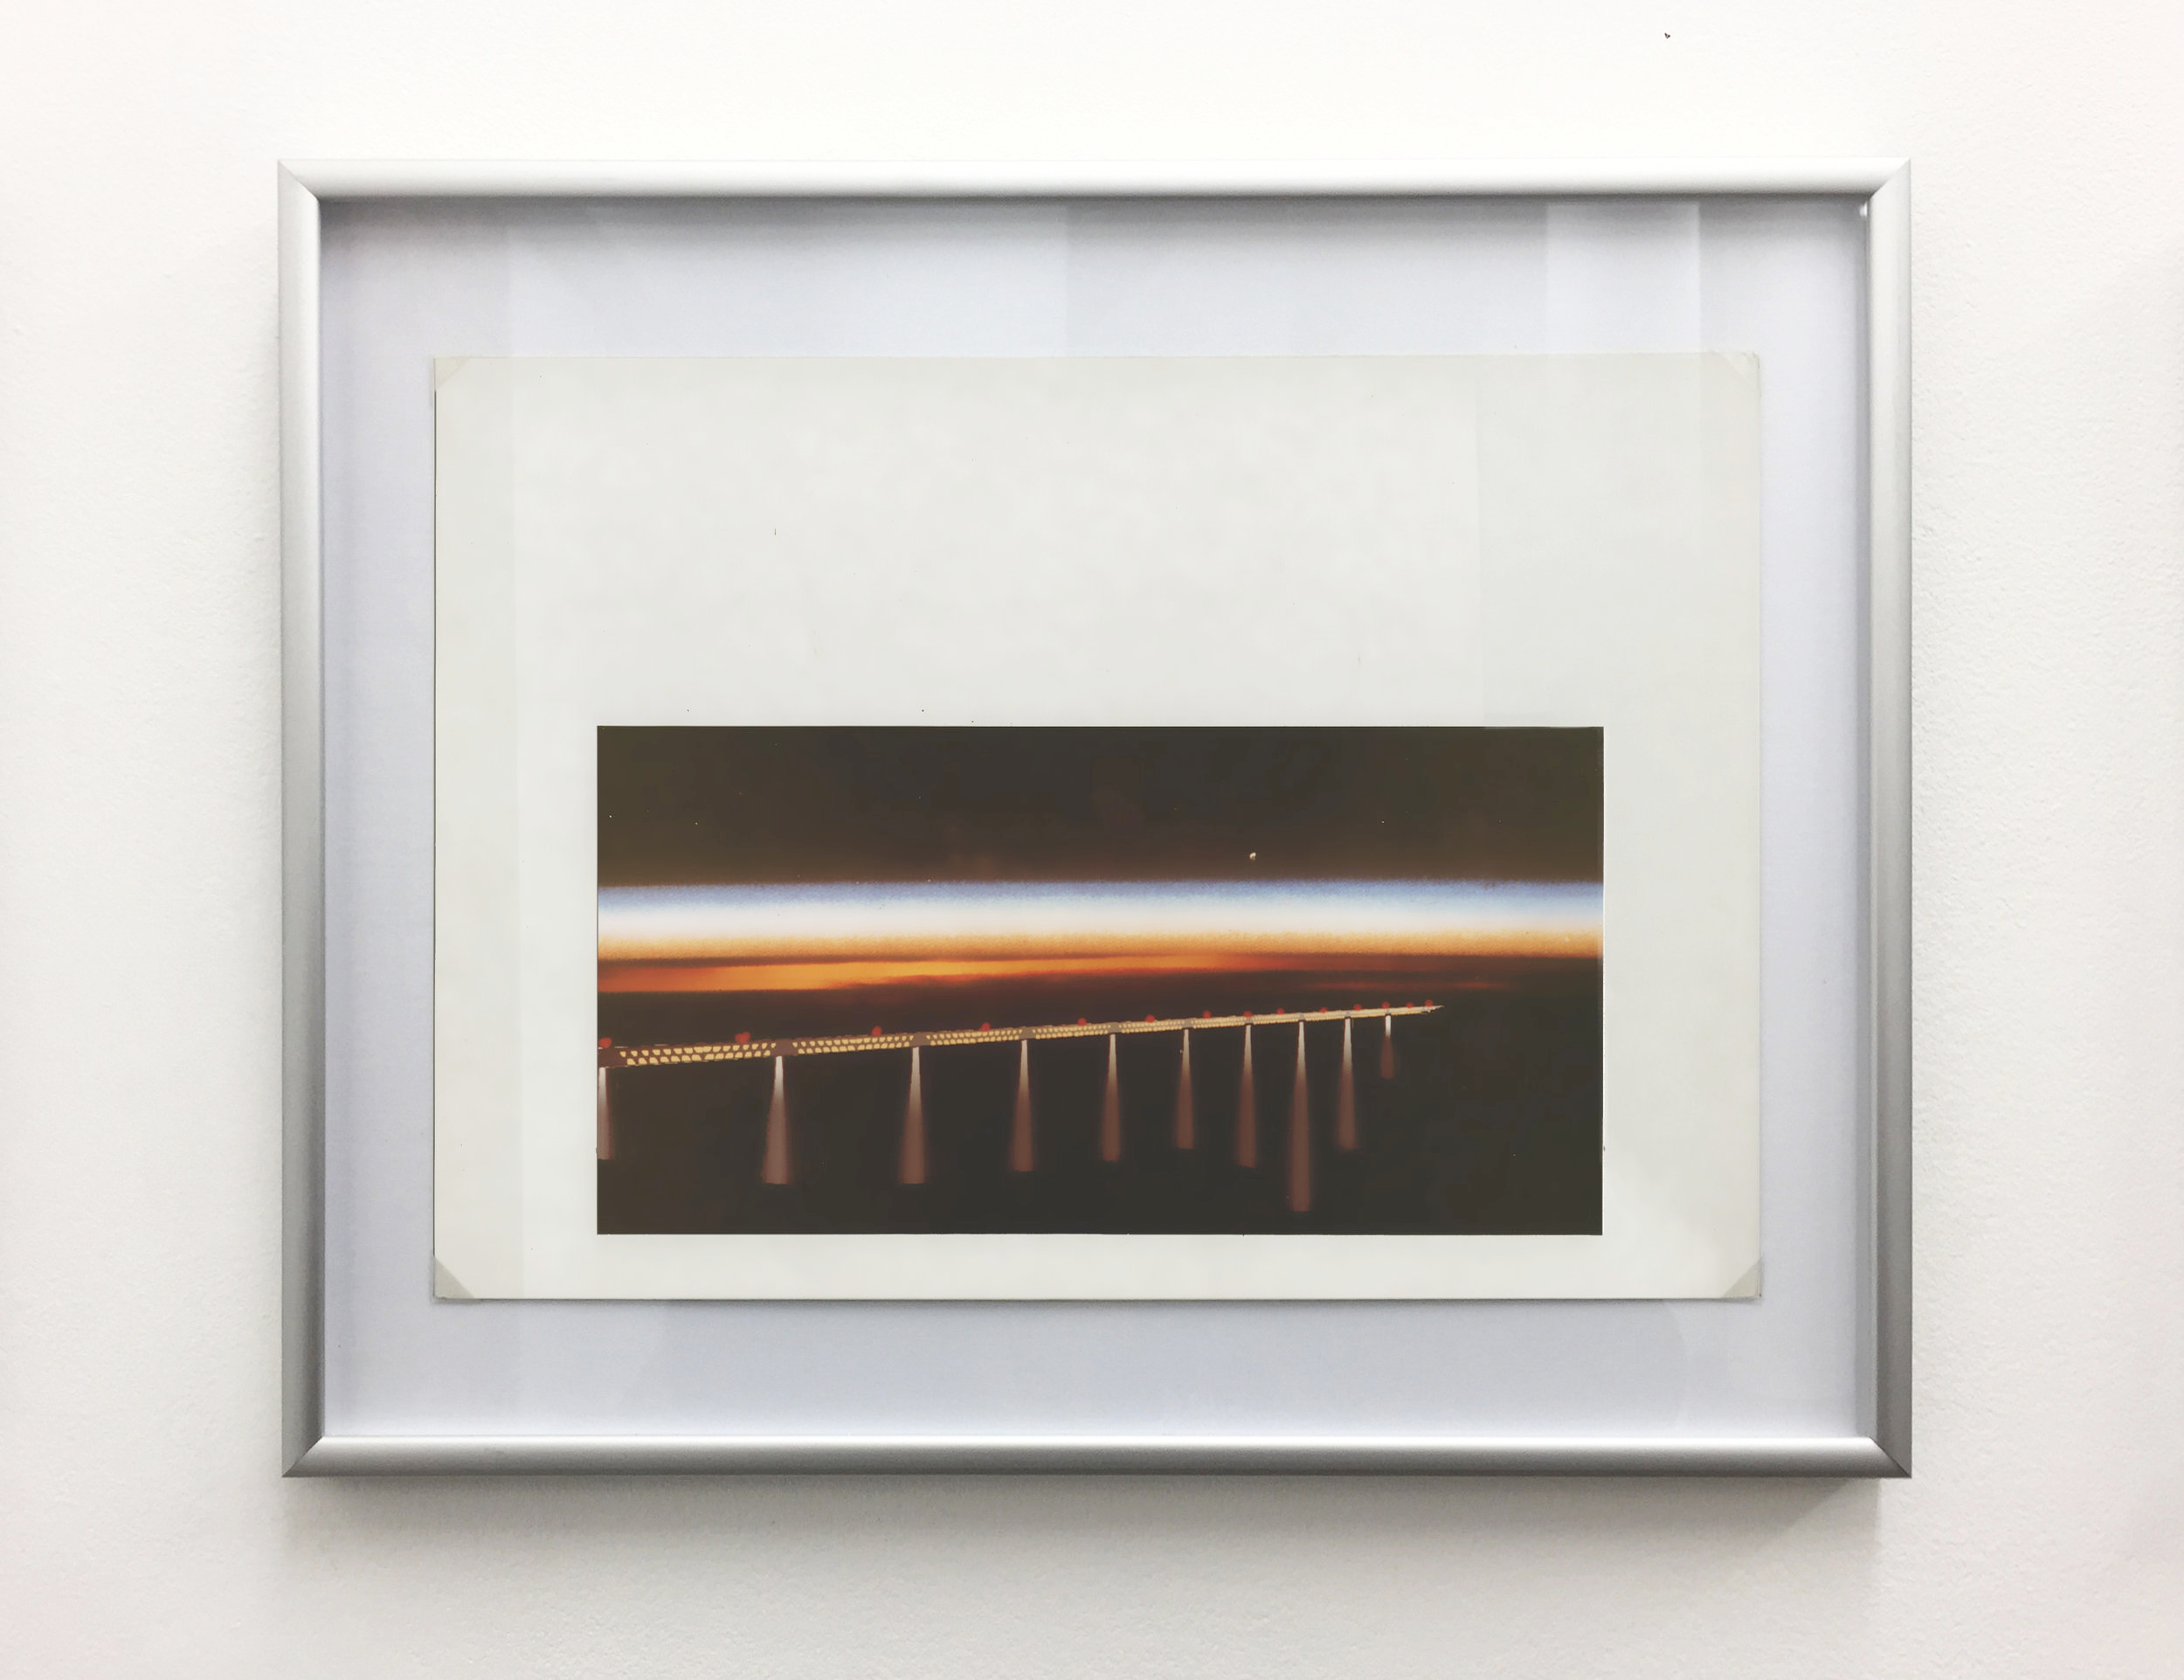 Millau Viaduct - Night Time , 1994, computer drawing printed on photo paper, cardboard